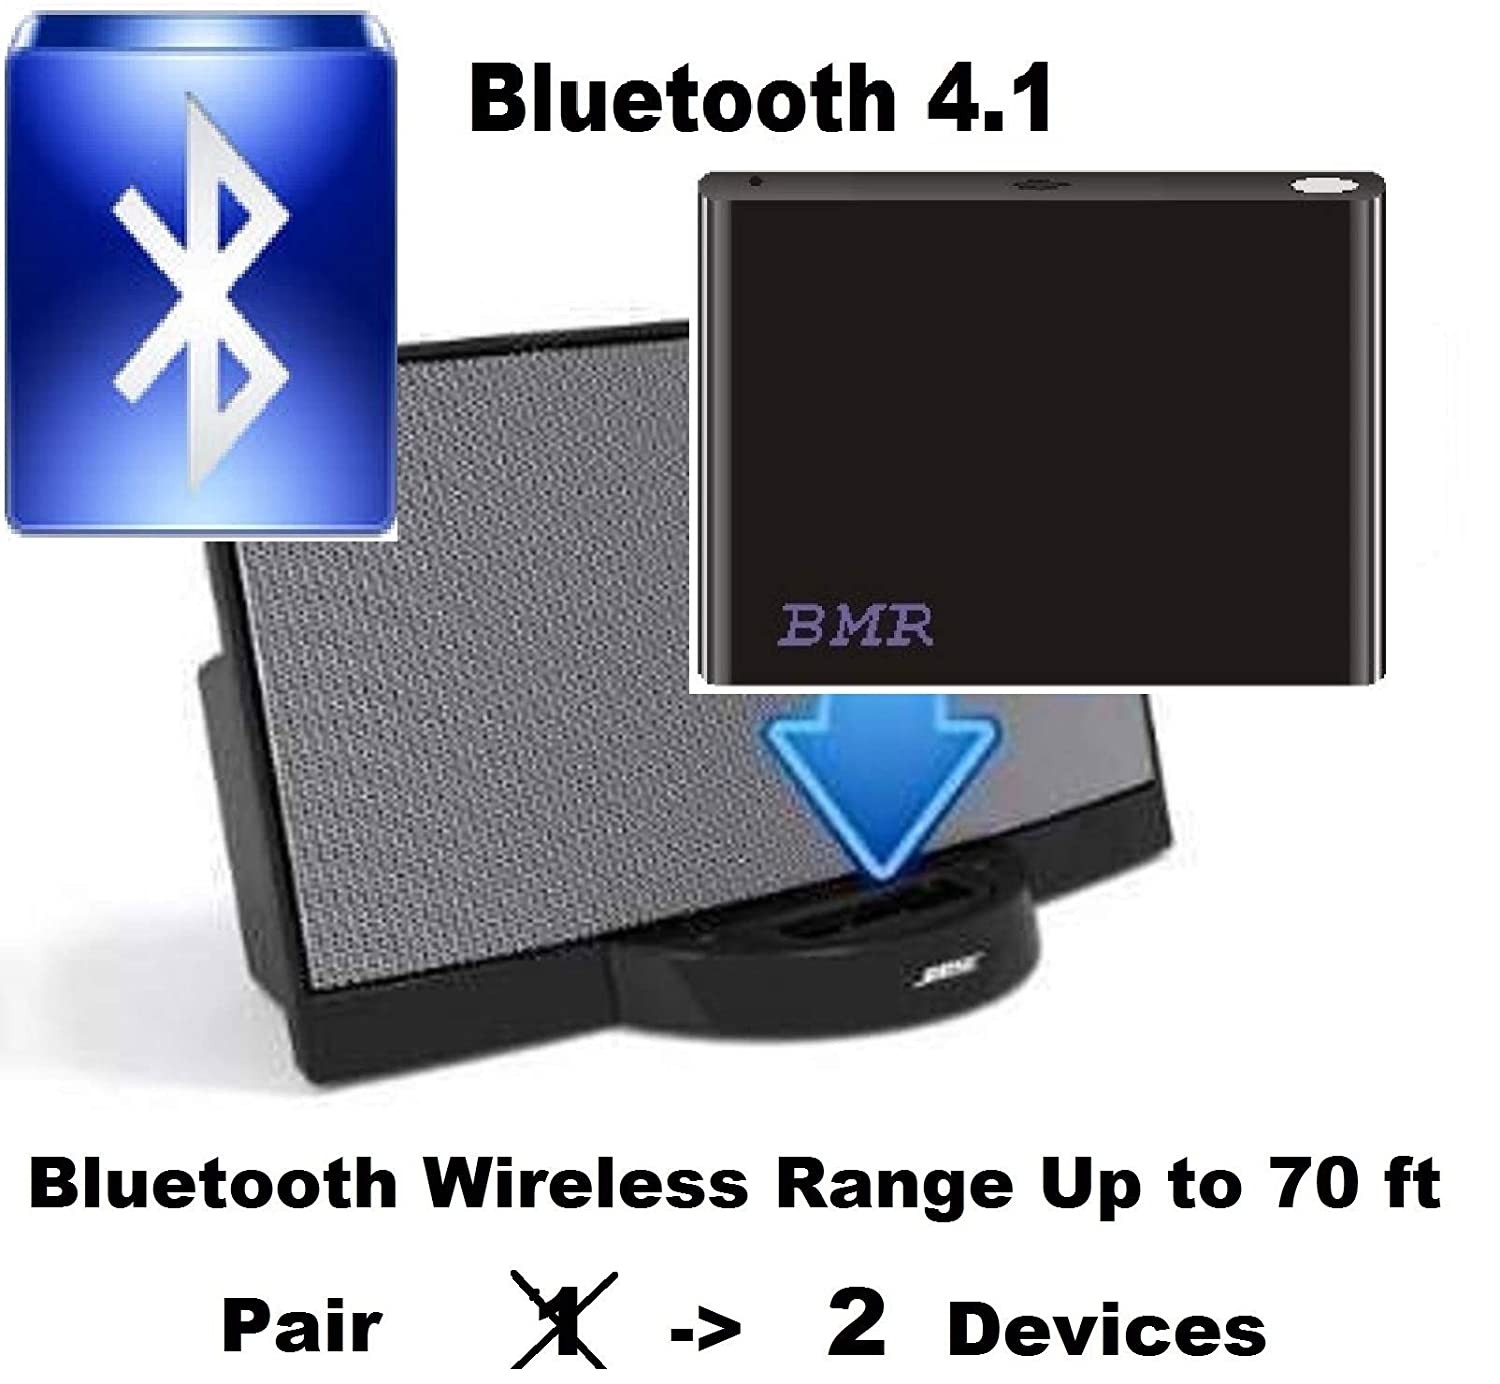 BMR A2DP 4 1 Bluetooth Music Receiver Adapter for Bose SoundDock, 30 pin  Docking Station, iPhone, Samsung, Nokia, HTC, LG, Echo Alexa